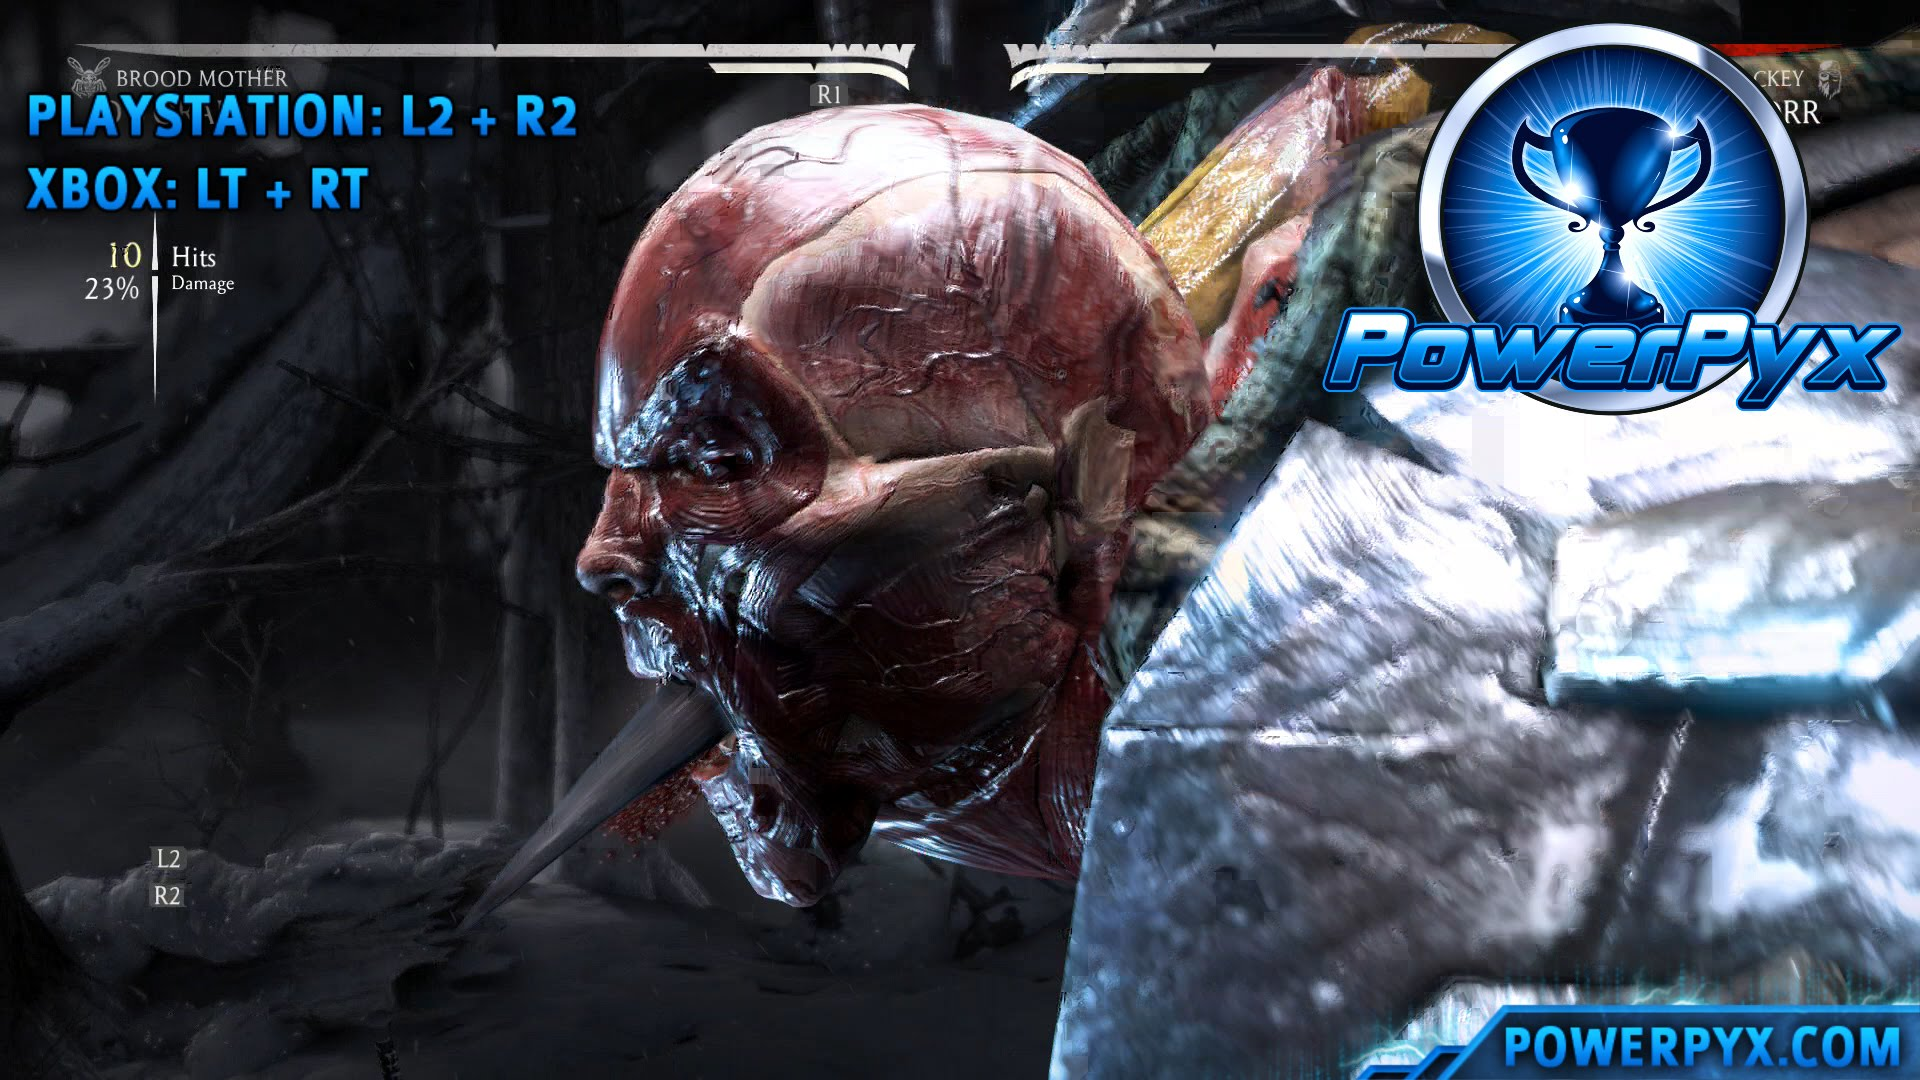 Mortal Kombat X - Performing 10 Hit Combos with All